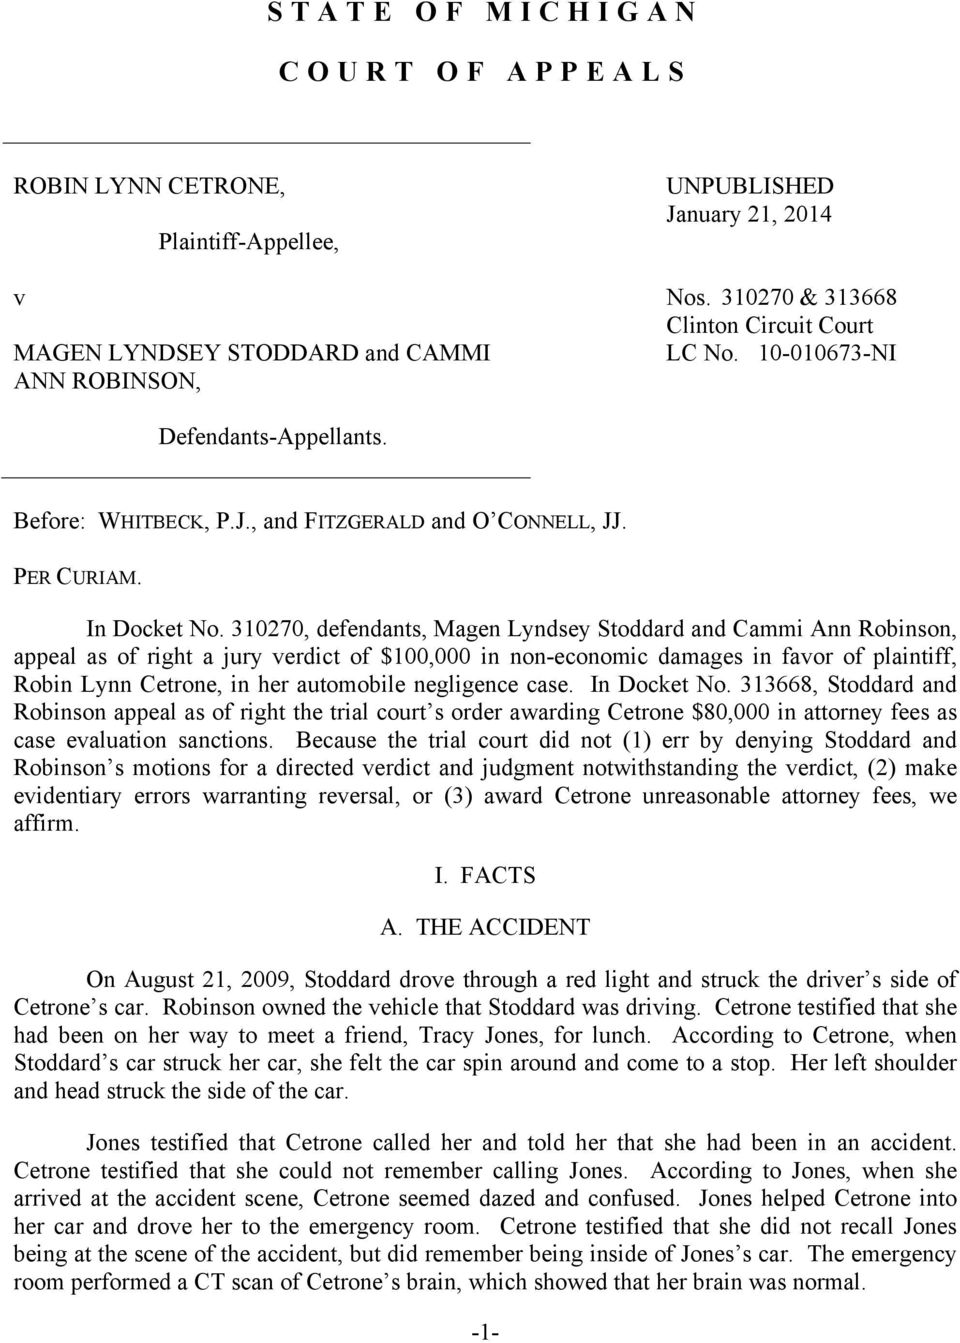 310270, defendants, Magen Lyndsey Stoddard and Cammi Ann Robinson, appeal as of right a jury verdict of $100,000 in non-economic damages in favor of plaintiff, Robin Lynn Cetrone, in her automobile